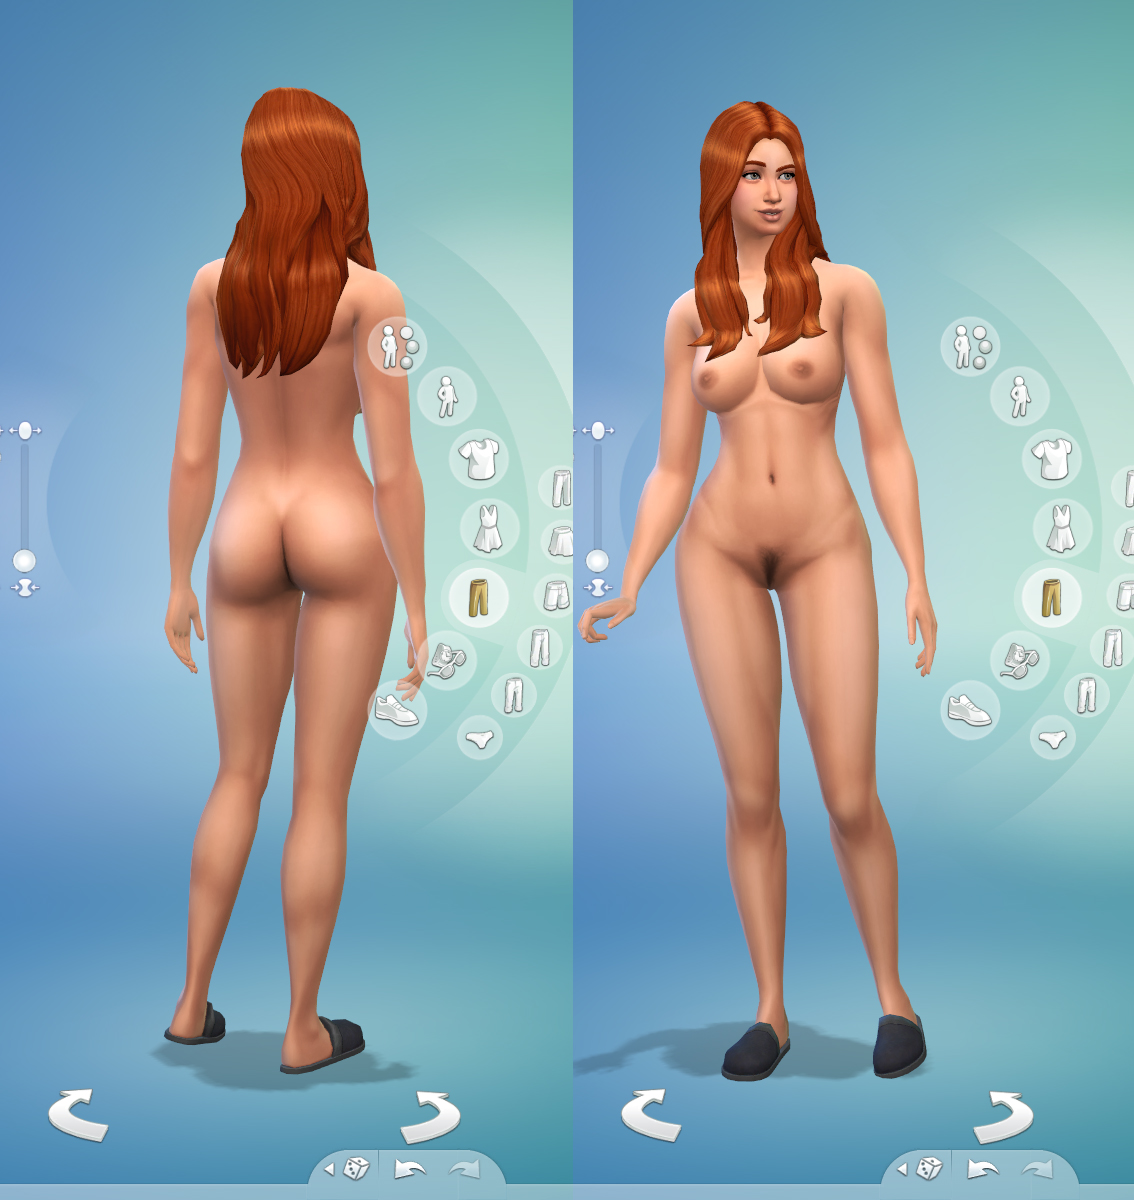 Female nudes sims 4 smut films